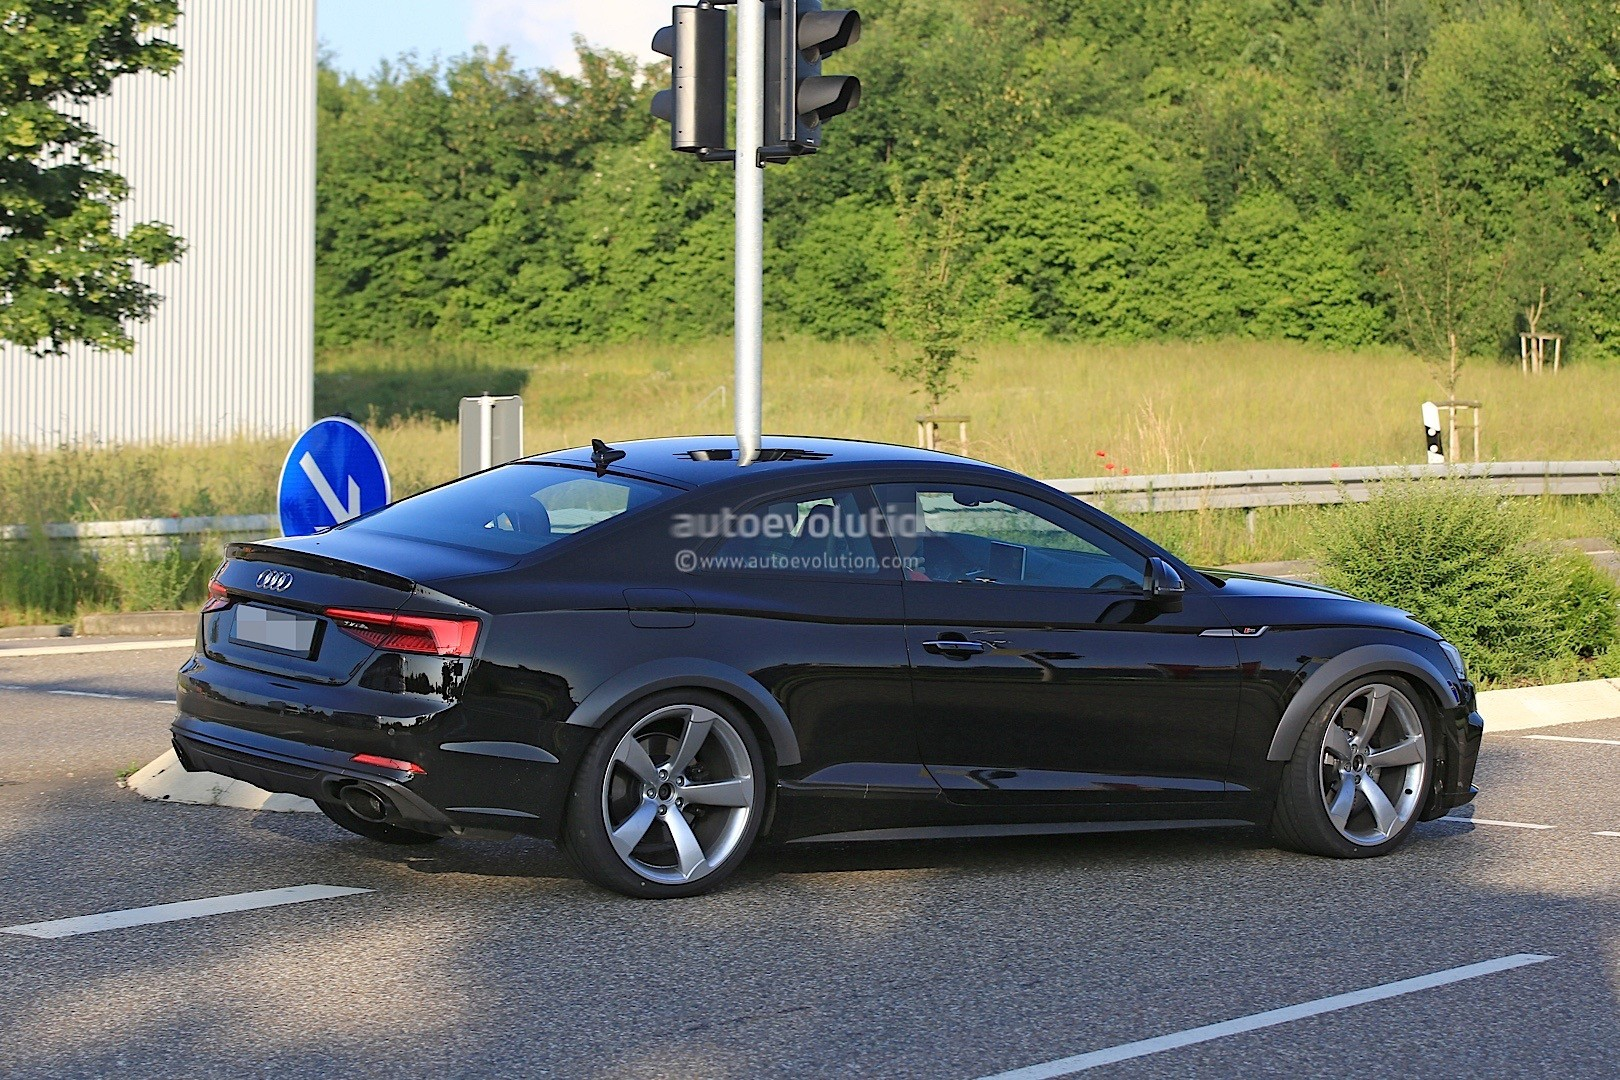 2018 Audi RS5 Coupe Test Mule Spied in Audi S5 Coupe Overalls - autoevolution